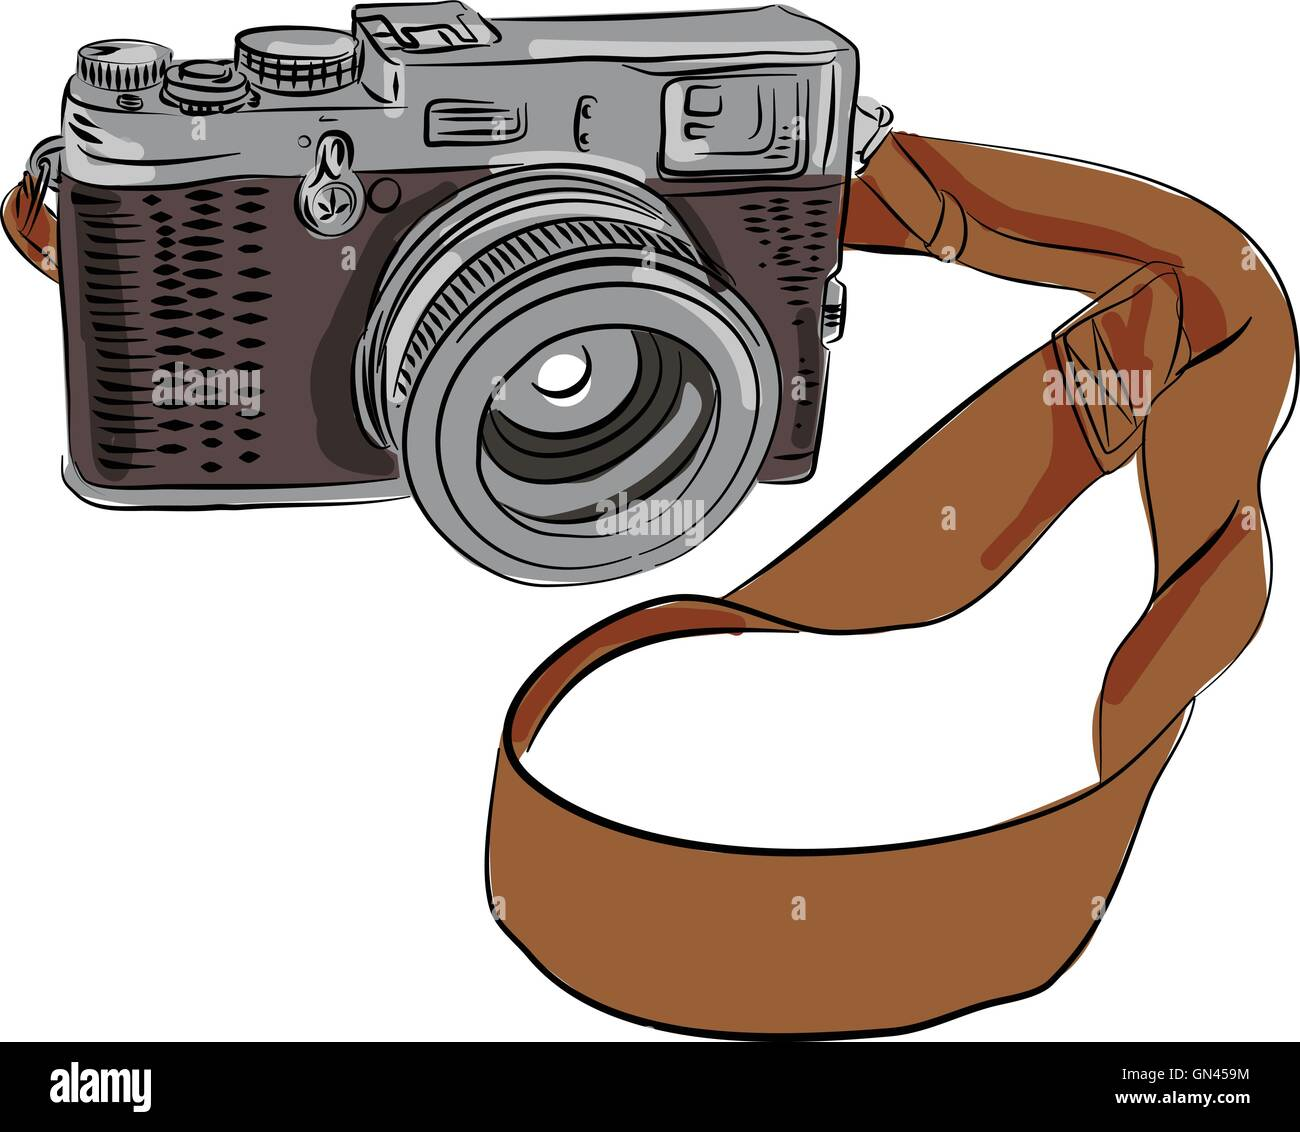 Vintage Camera Drawing Isolated - Stock Vector